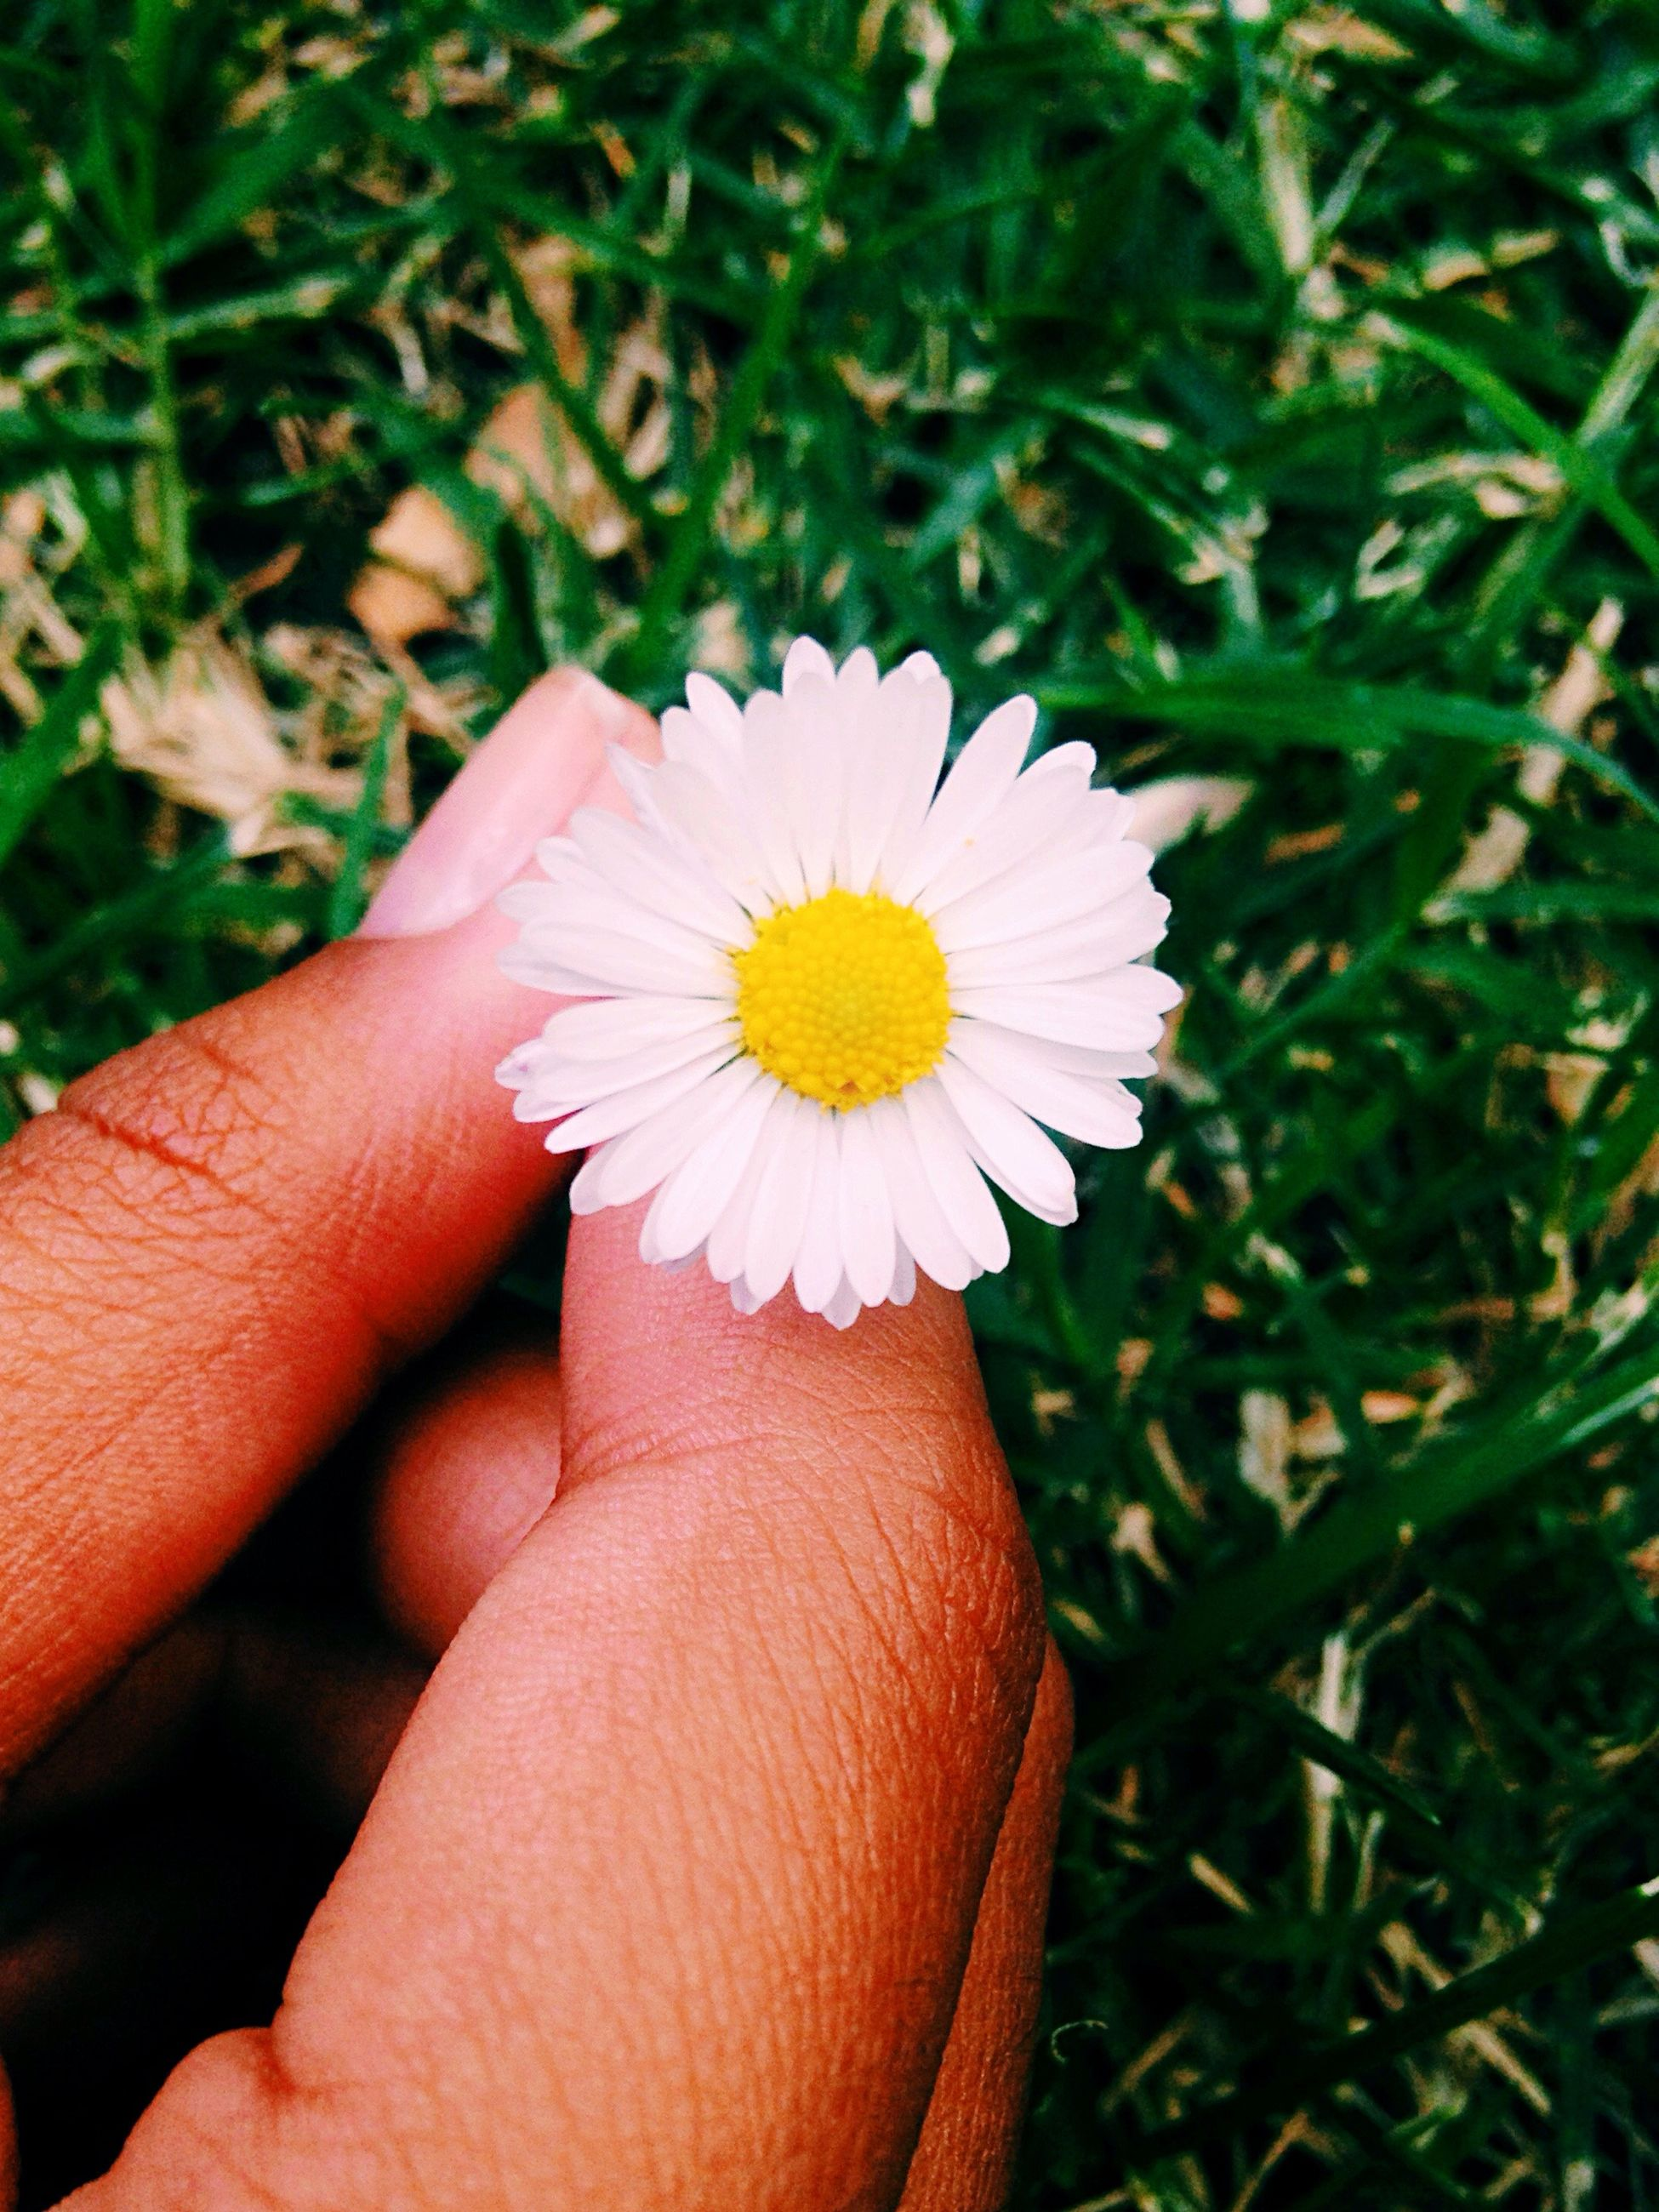 person, flower, holding, fragility, petal, flower head, freshness, human finger, personal perspective, part of, single flower, daisy, unrecognizable person, cropped, white color, close-up, pollen